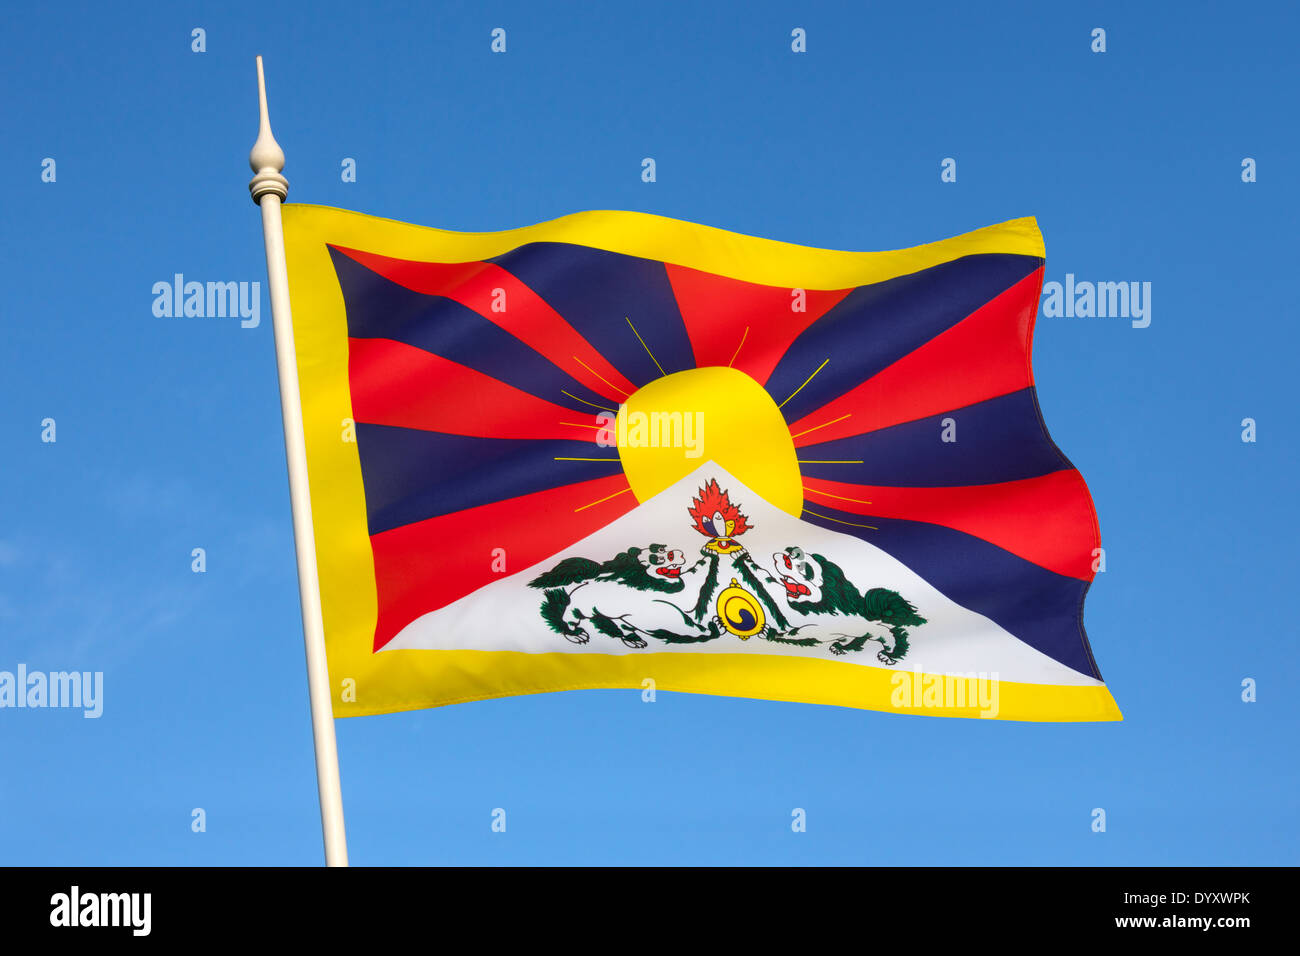 The Tibetan flag - Stock Image